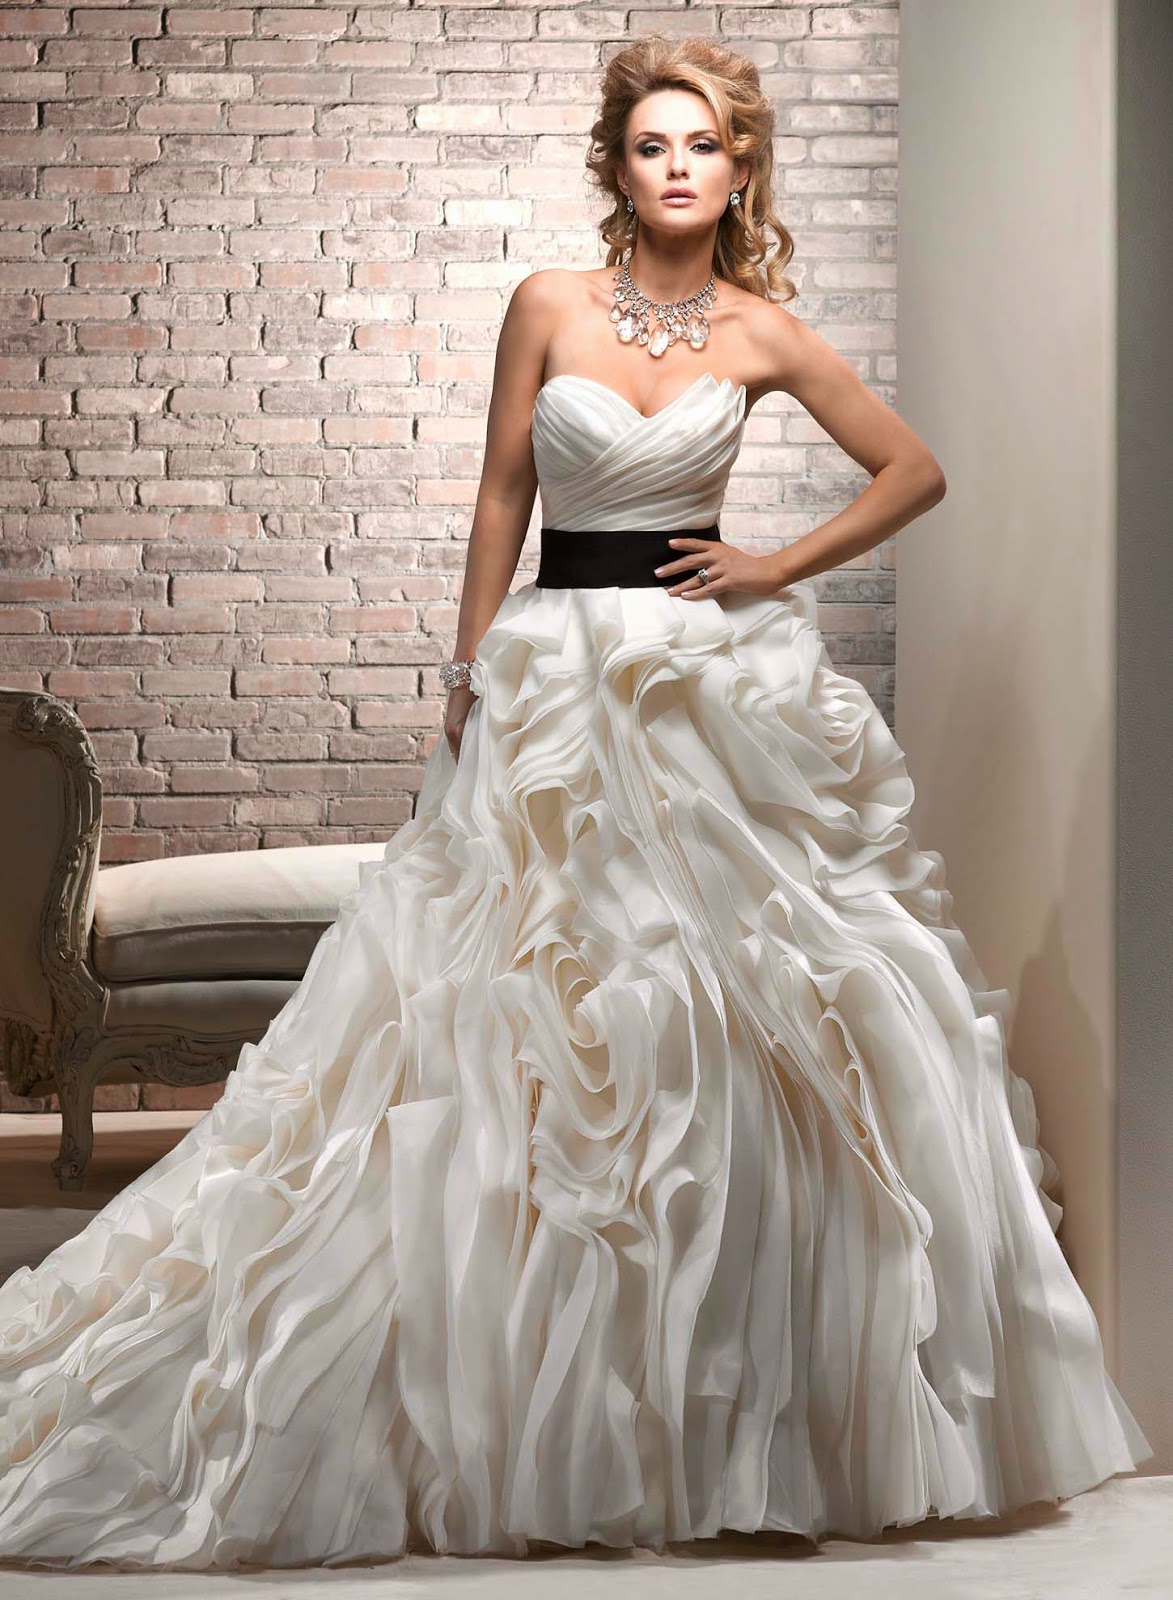 casual wedding dress; casual wedding dres with belt; casual wedding gown; casual satin wedding dress; casual satin wedding gown; satin wedding dress with belt